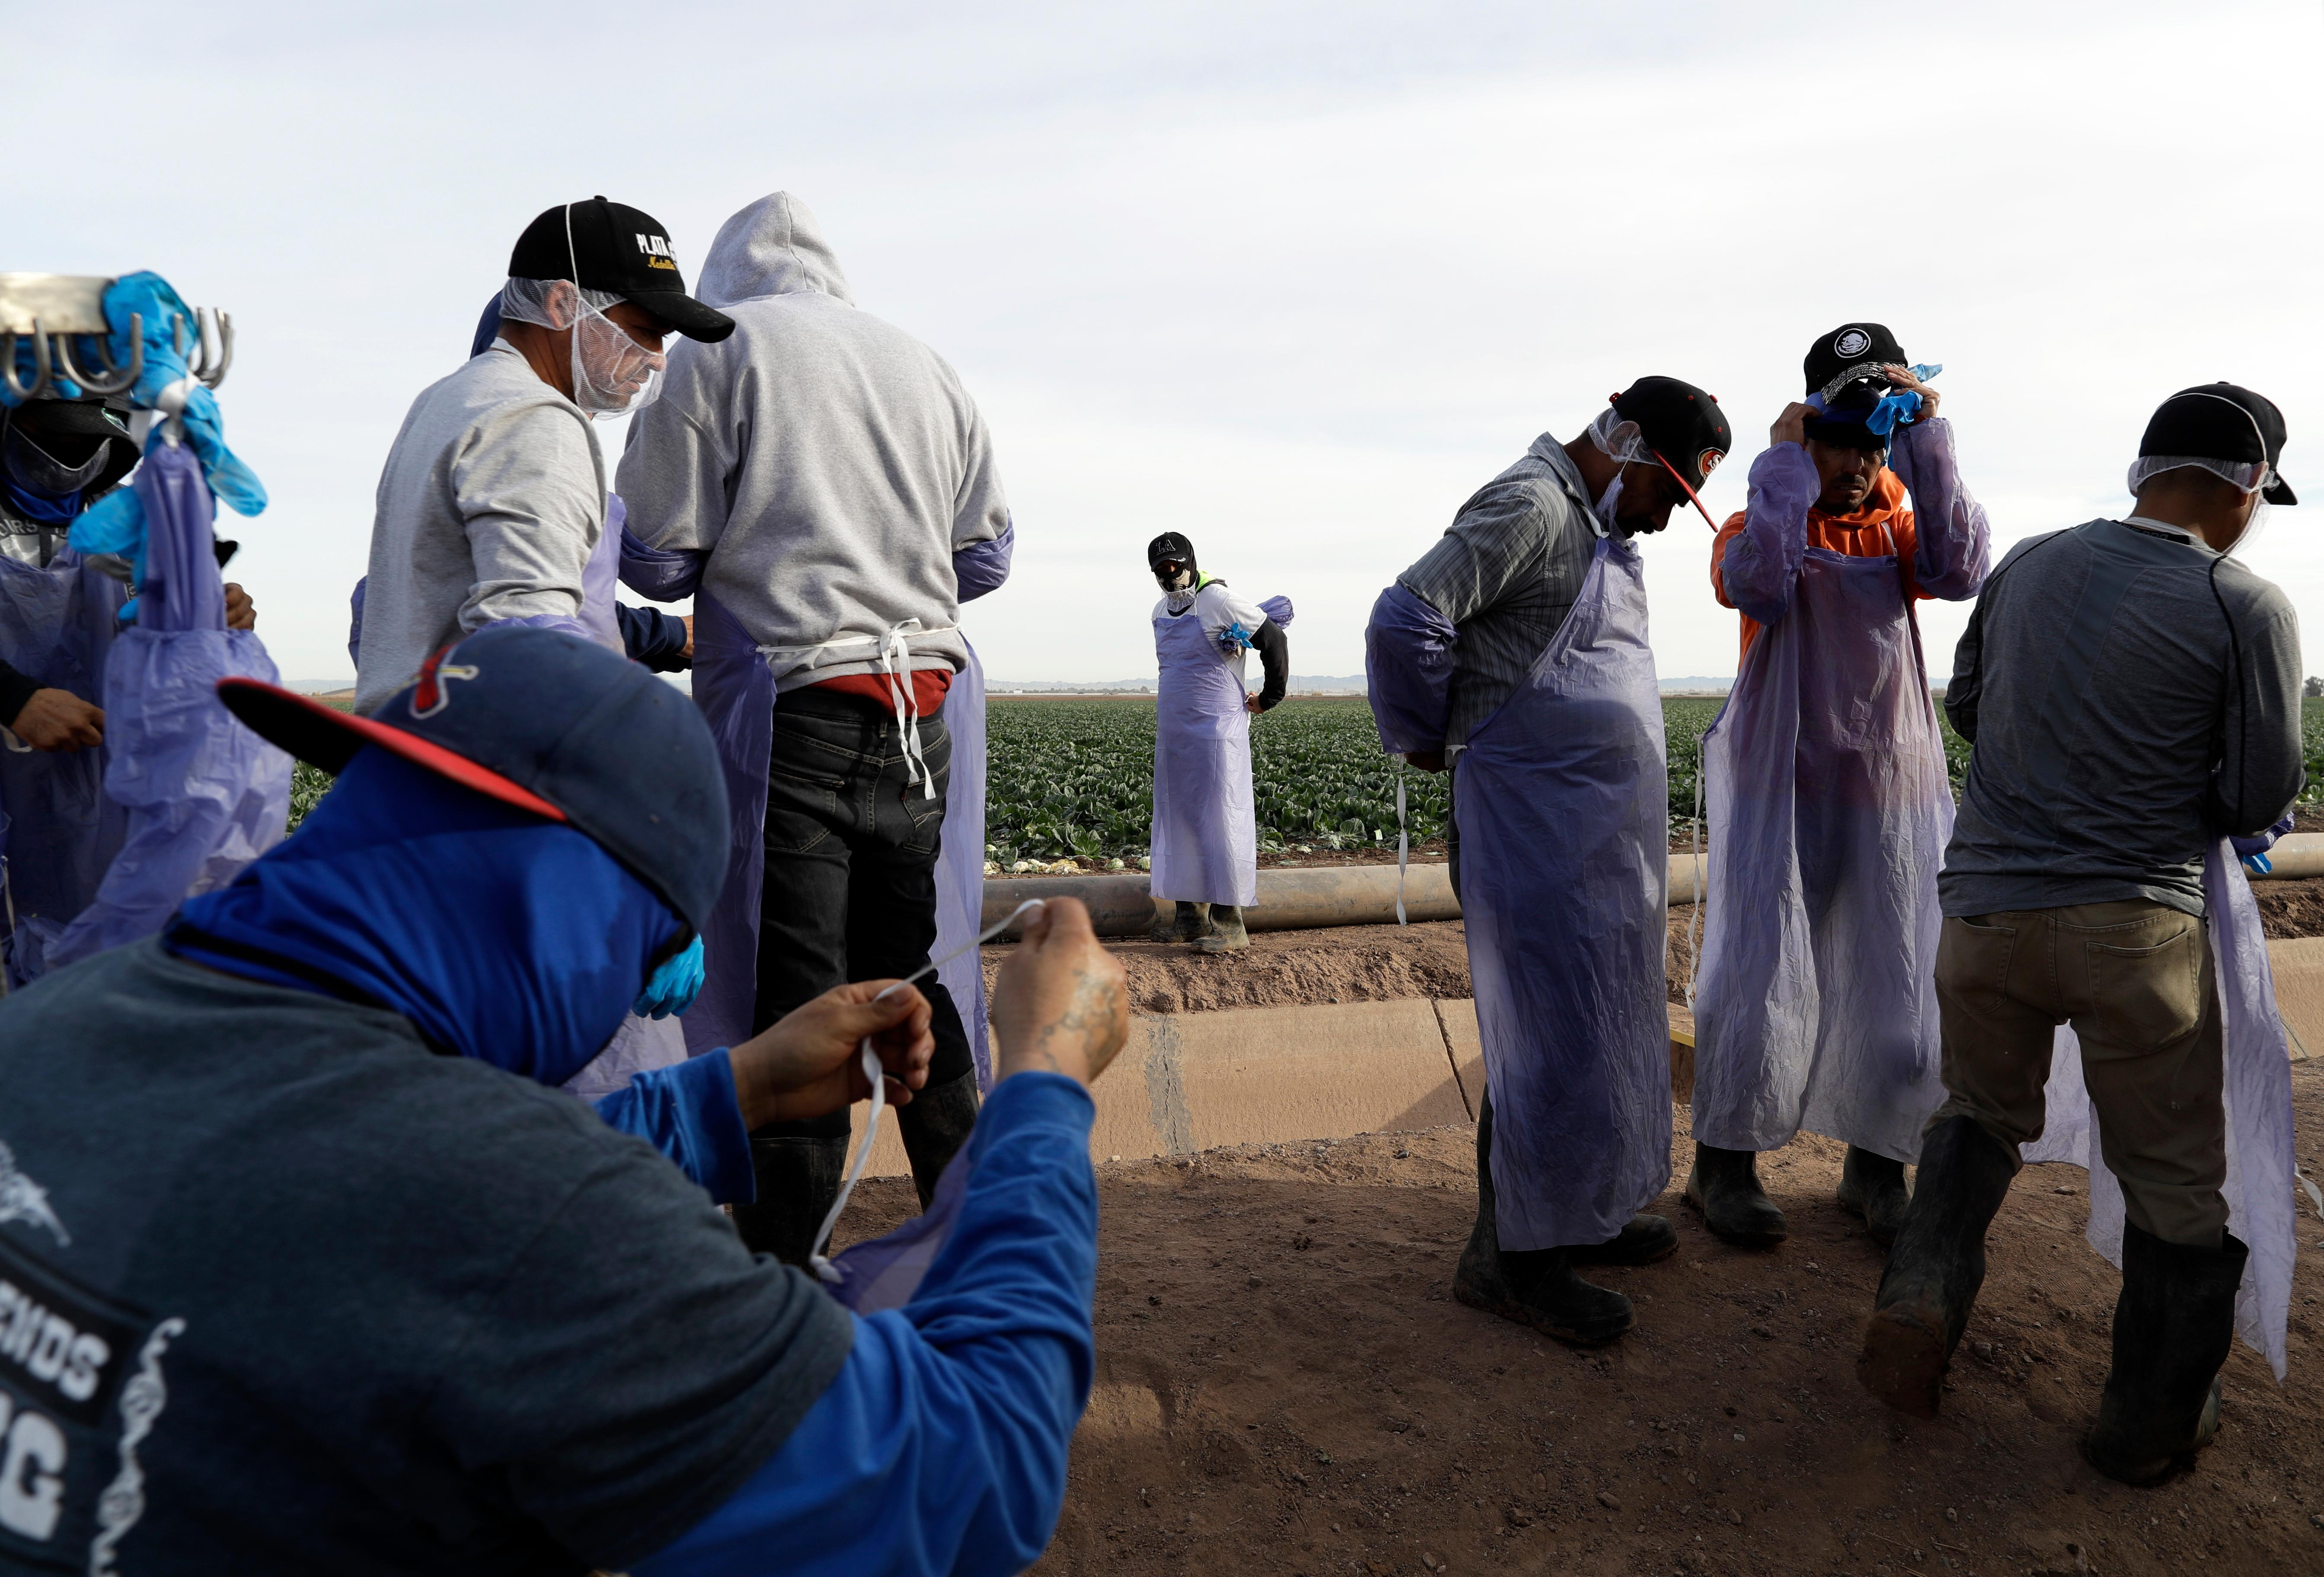 "In this March 6, 2018 photo, farmworkers prepare after a break while harvesting cabbage in a field outside of Calexico, Calif. For decades, cross-border commuters have picked lettuce, carrots, broccoli, onions, cauliflower and other vegetables that make California's Imperial Valley ""America's Salad Bowl"" from December through March. As Trump visits the border for the first time as president on Tuesday, the harvest is a reminder of how little has changed despite heated rhetoric in Washington. (AP Photo/Gregory Bull)"